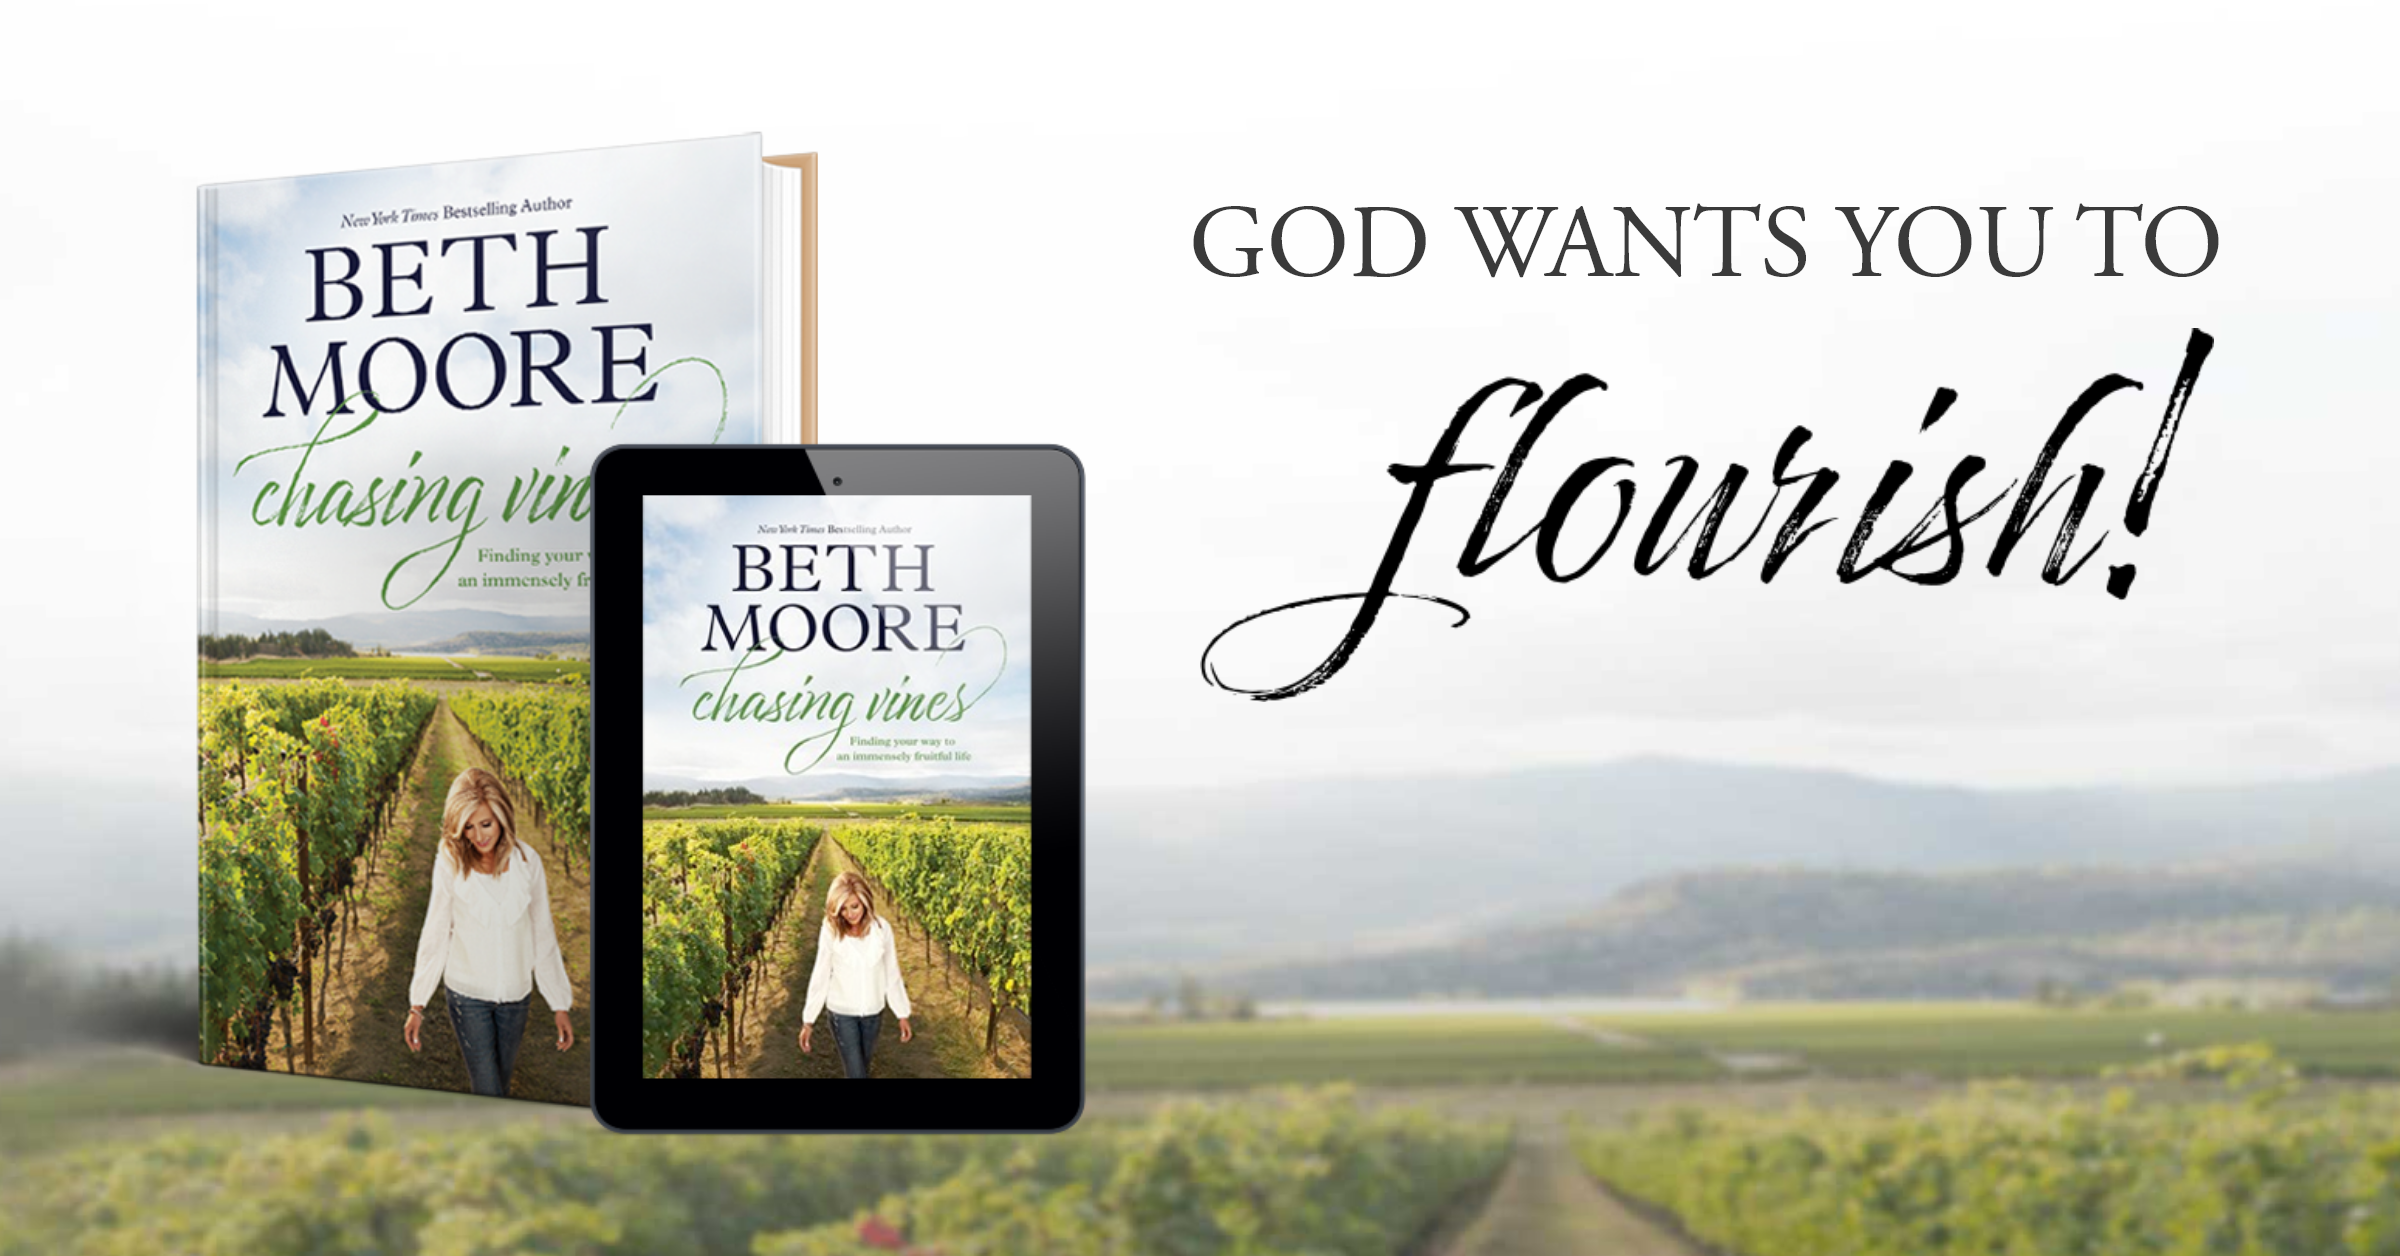 Chasing Vines By Beth Moore Tyndale House Publishers